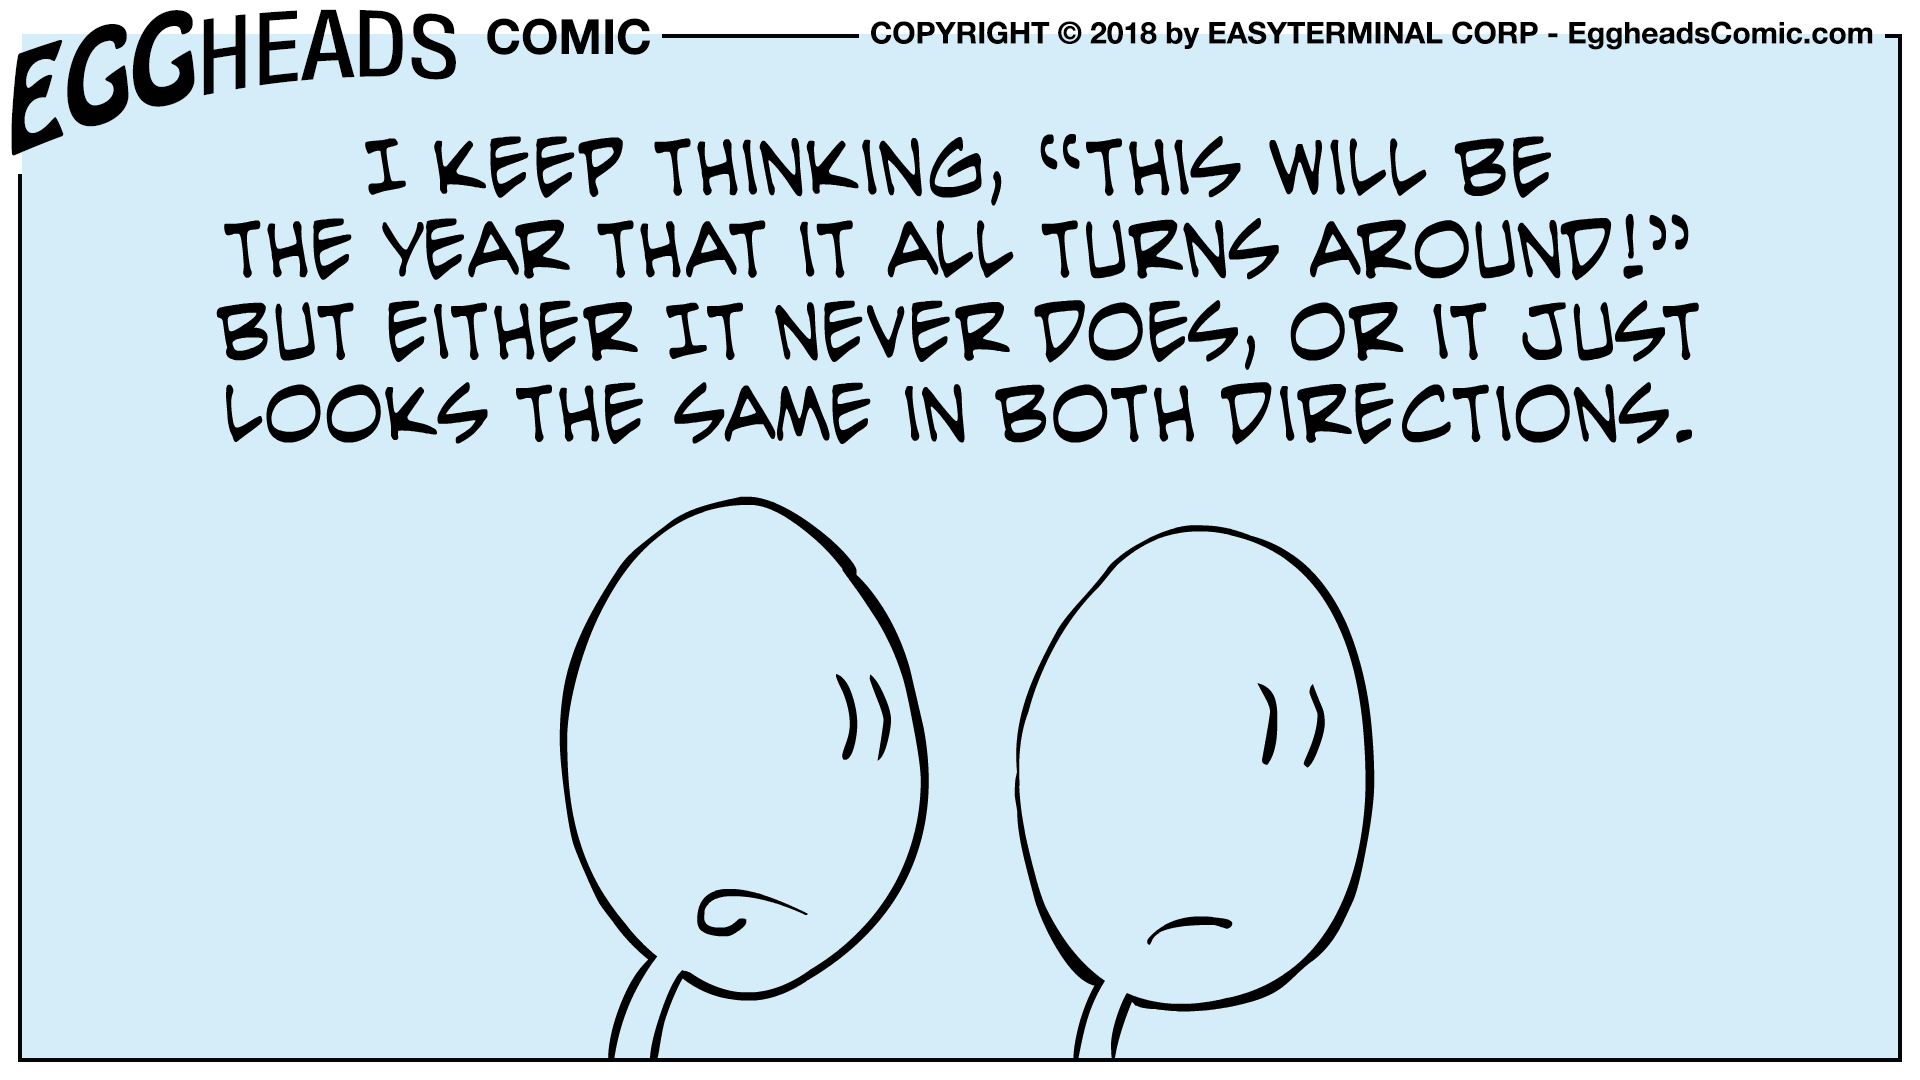 Webcomic Eggheads Comic Strip 043 This Will Be The Year